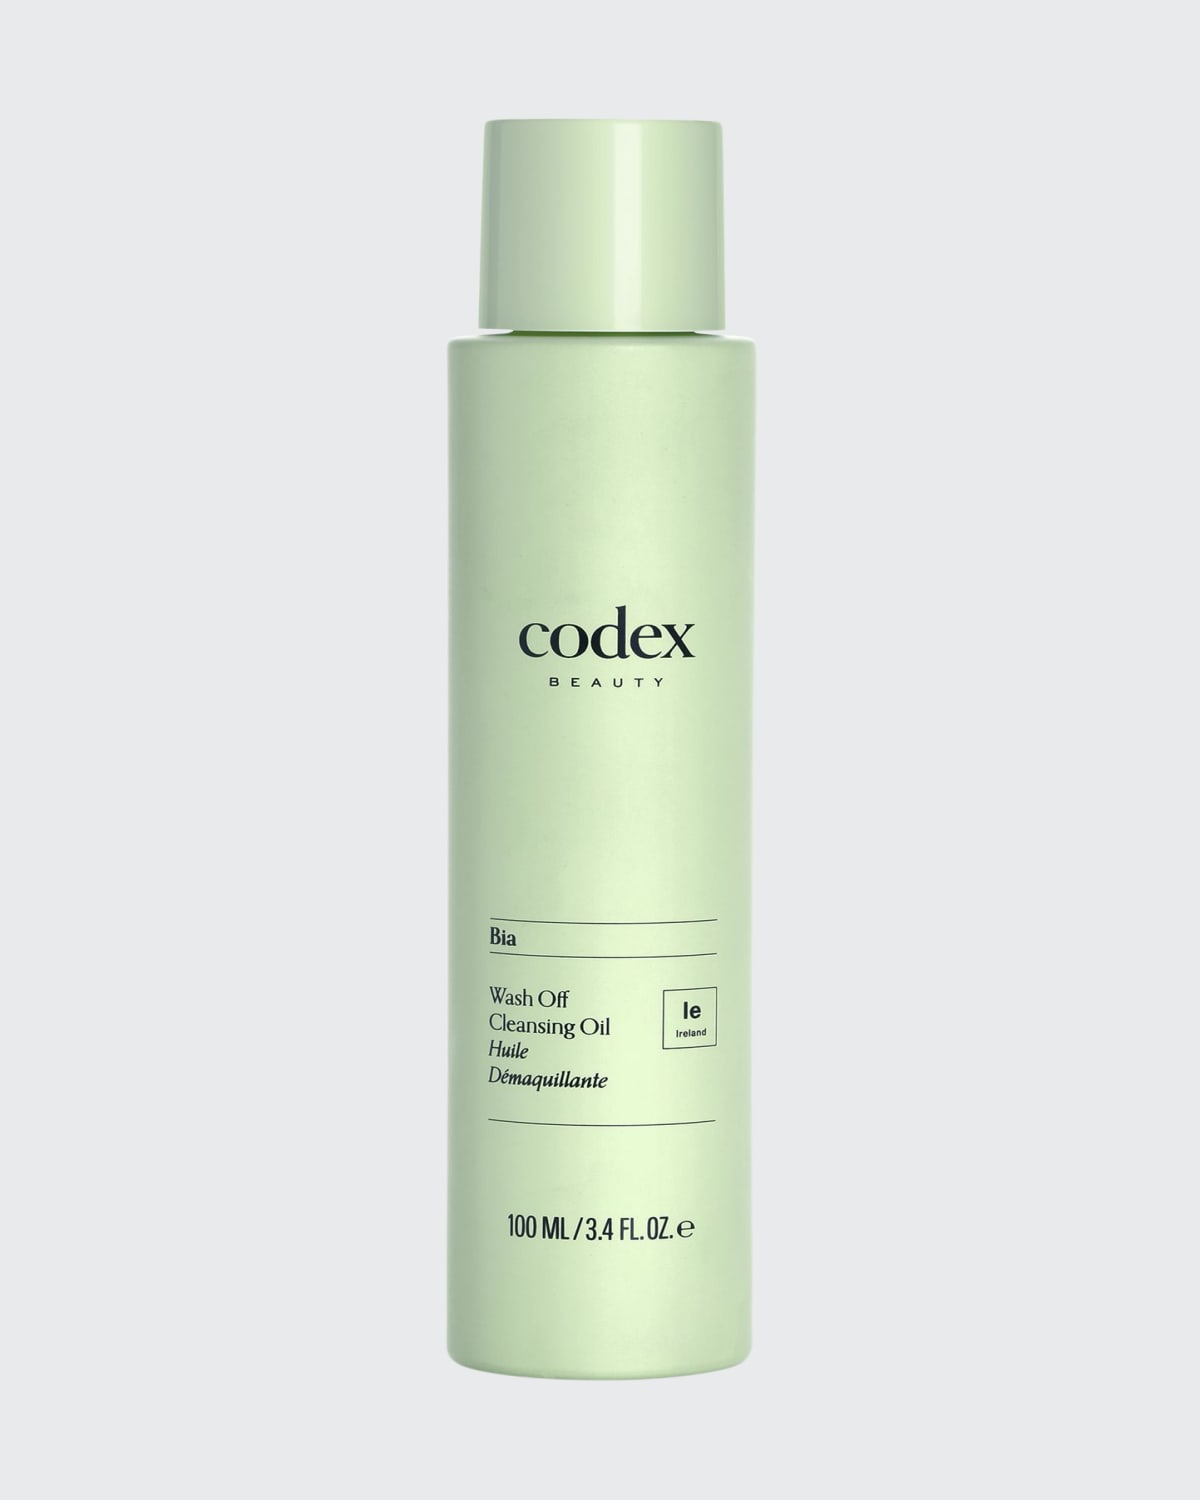 3.4 oz. Cleansing Oil